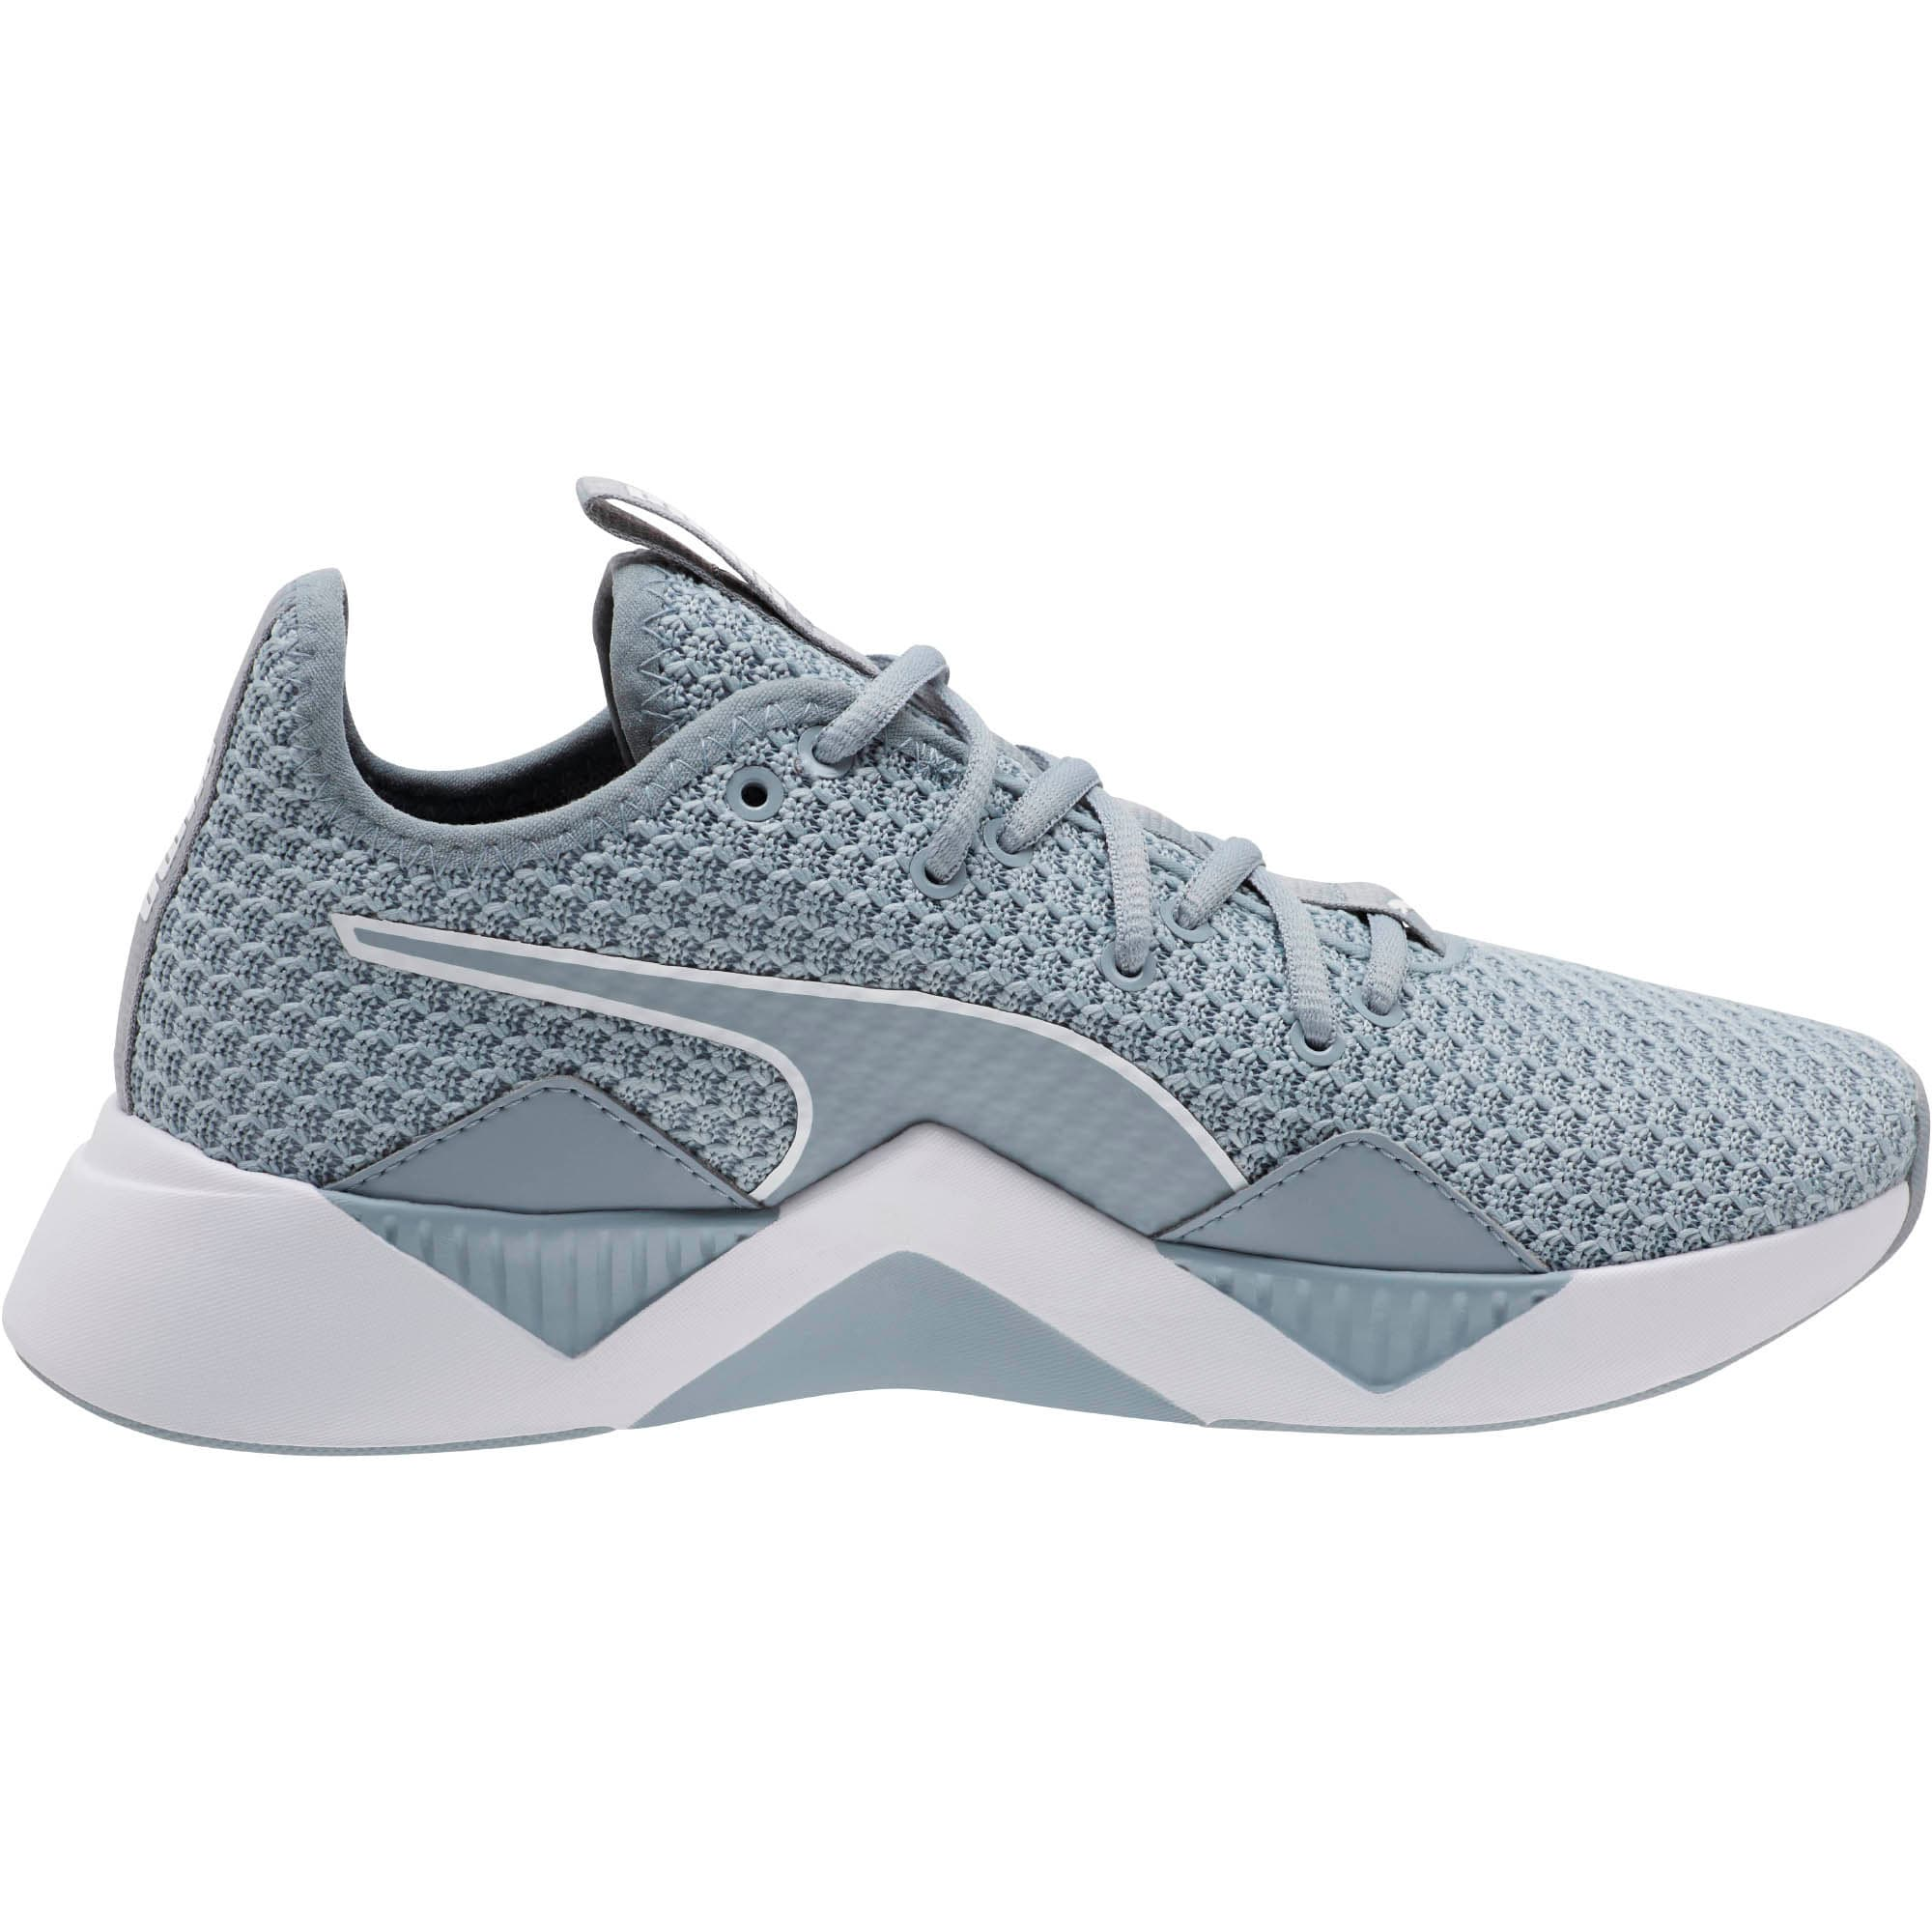 Thumbnail 3 of Incite FS Women's Training Shoes, Quarry-Puma White, medium